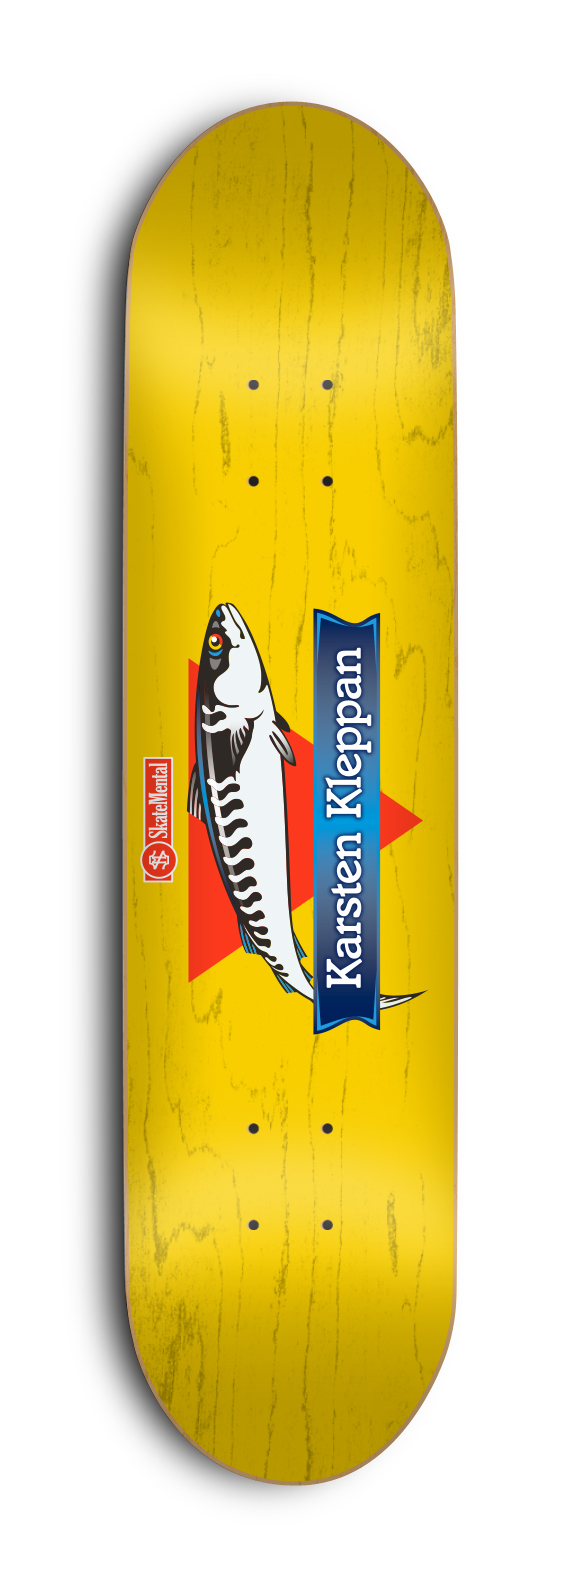 BT_SS17_Deck_Mock_Kleppan_Canned-Fish_Yellow-Veneer.jpg